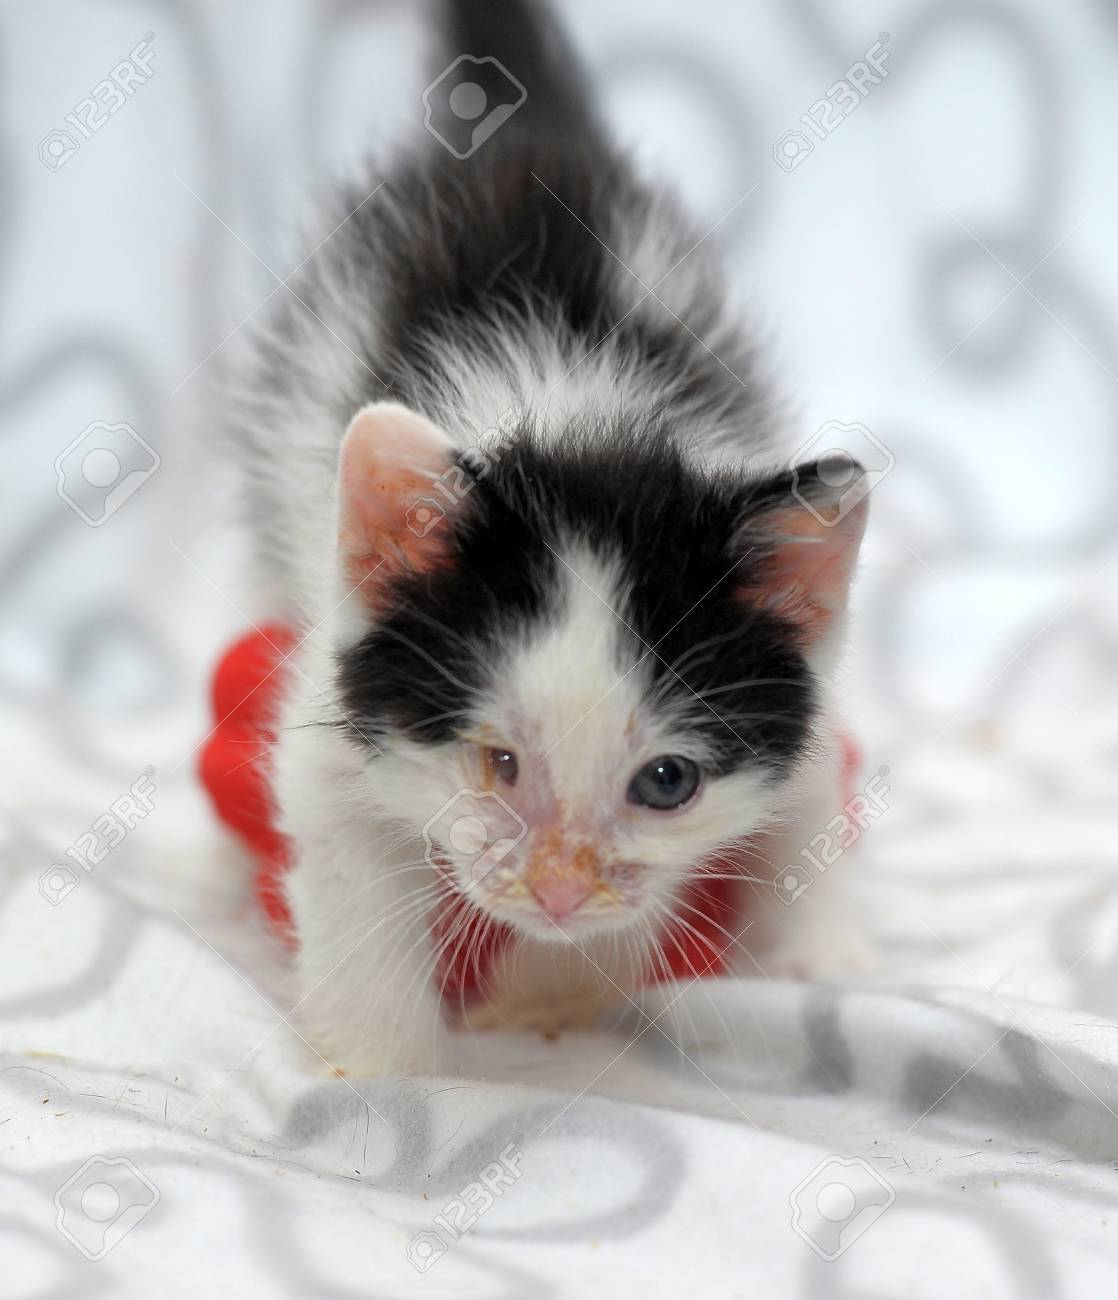 small kitten with diseased eyes rescued zoo defenders Stock Photo - 19577542